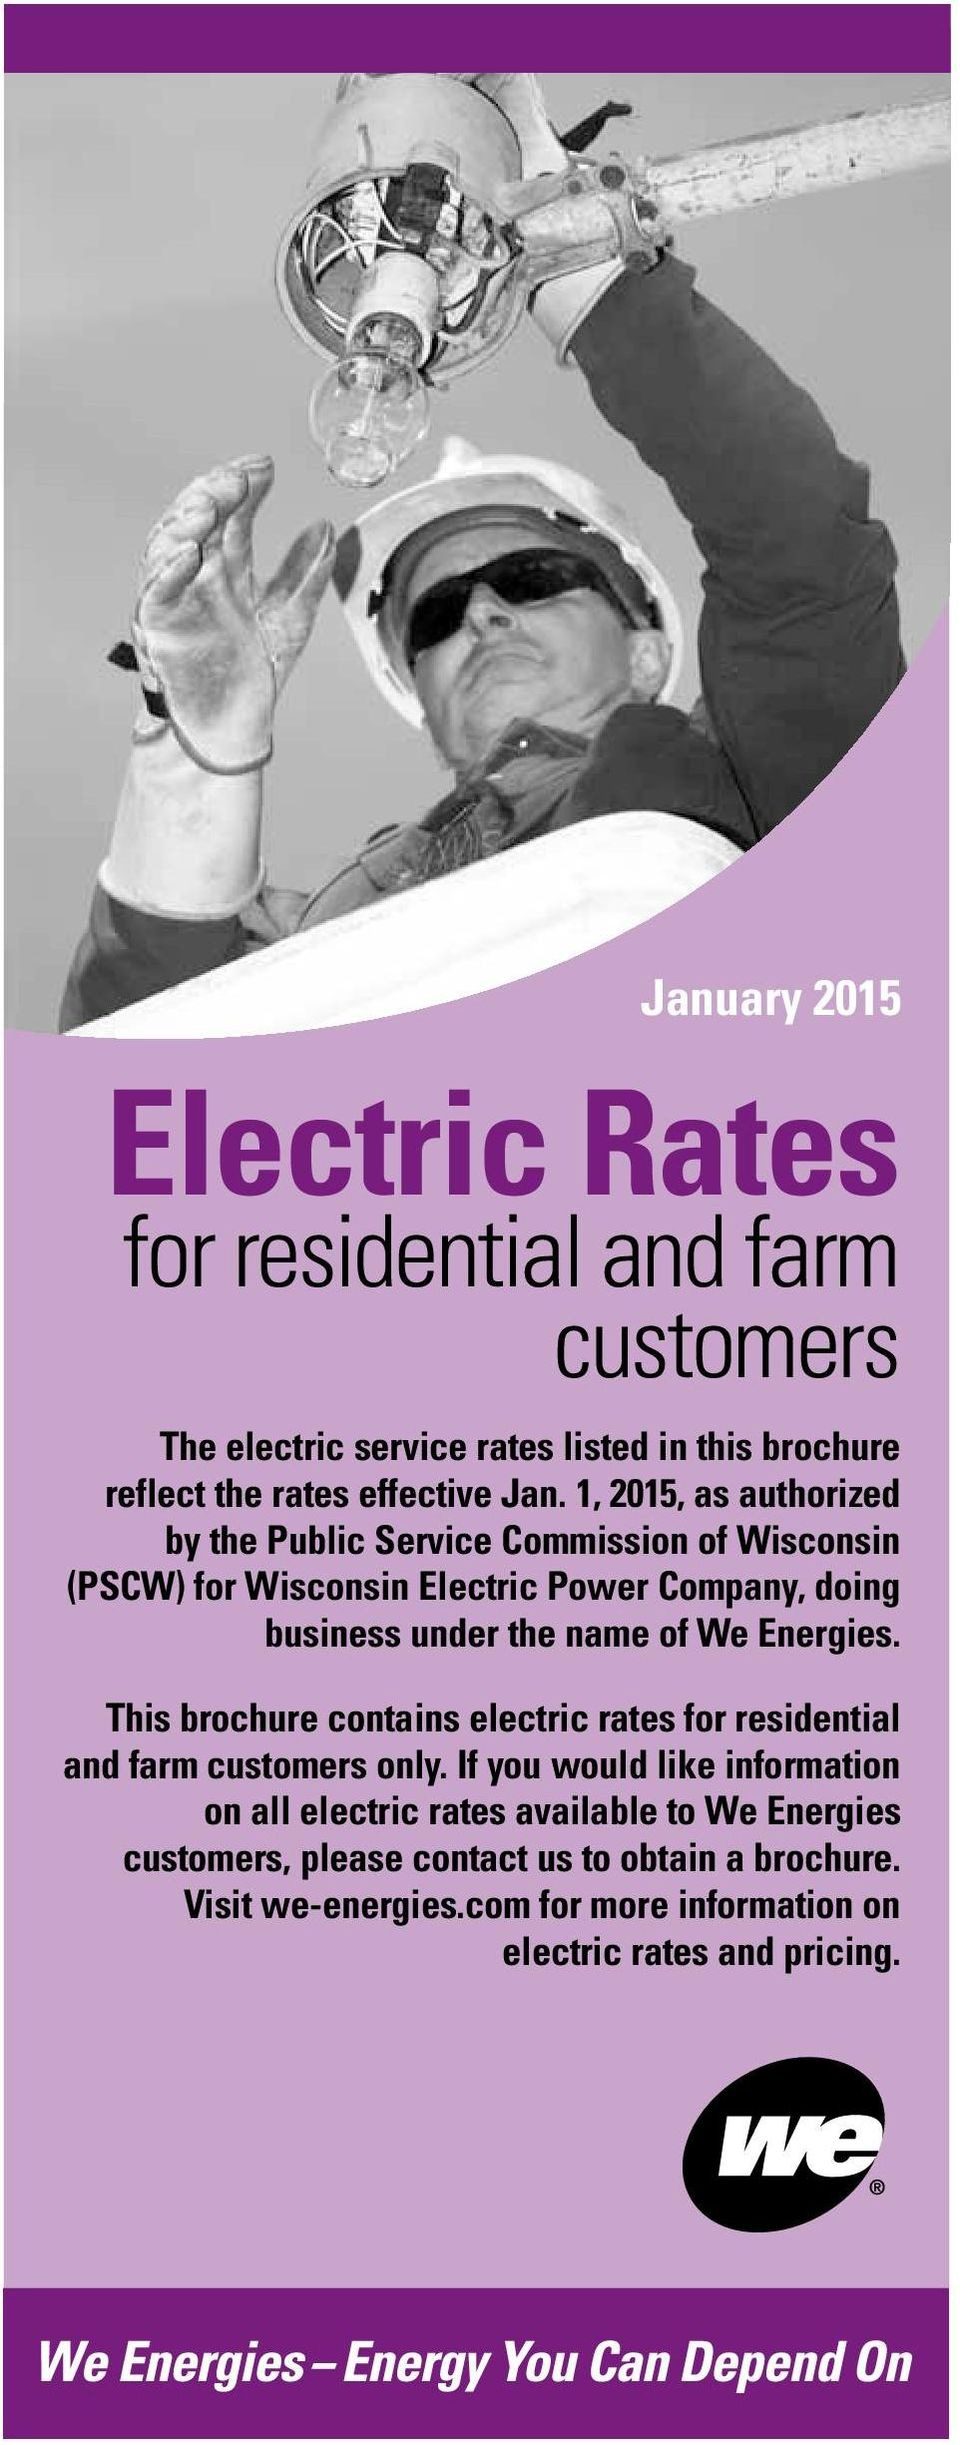 We Energies. This brochure contains electric rates for residential and farm customers only.